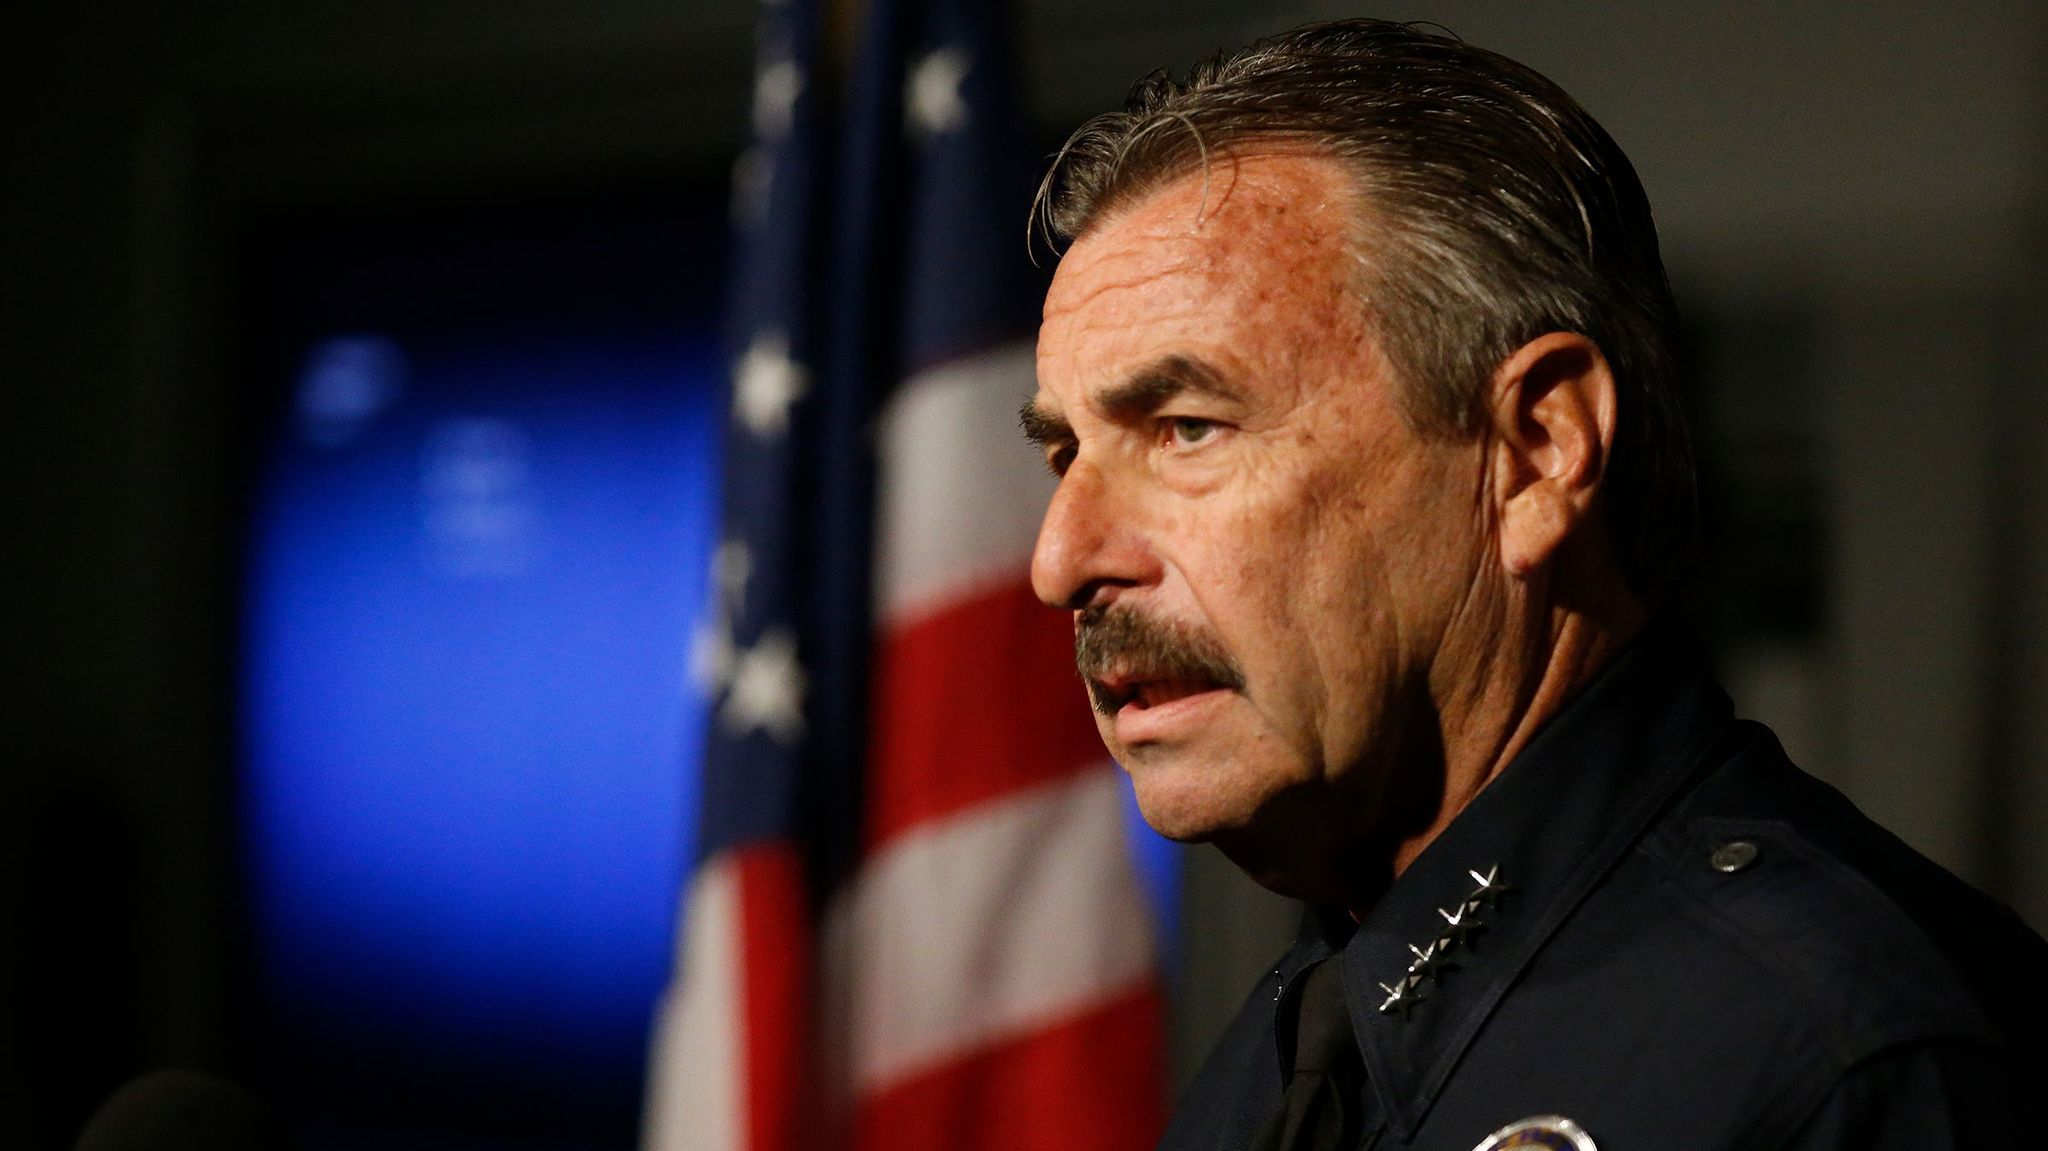 LA 90: LAPD will not help deport immigrants under Trump, chief says